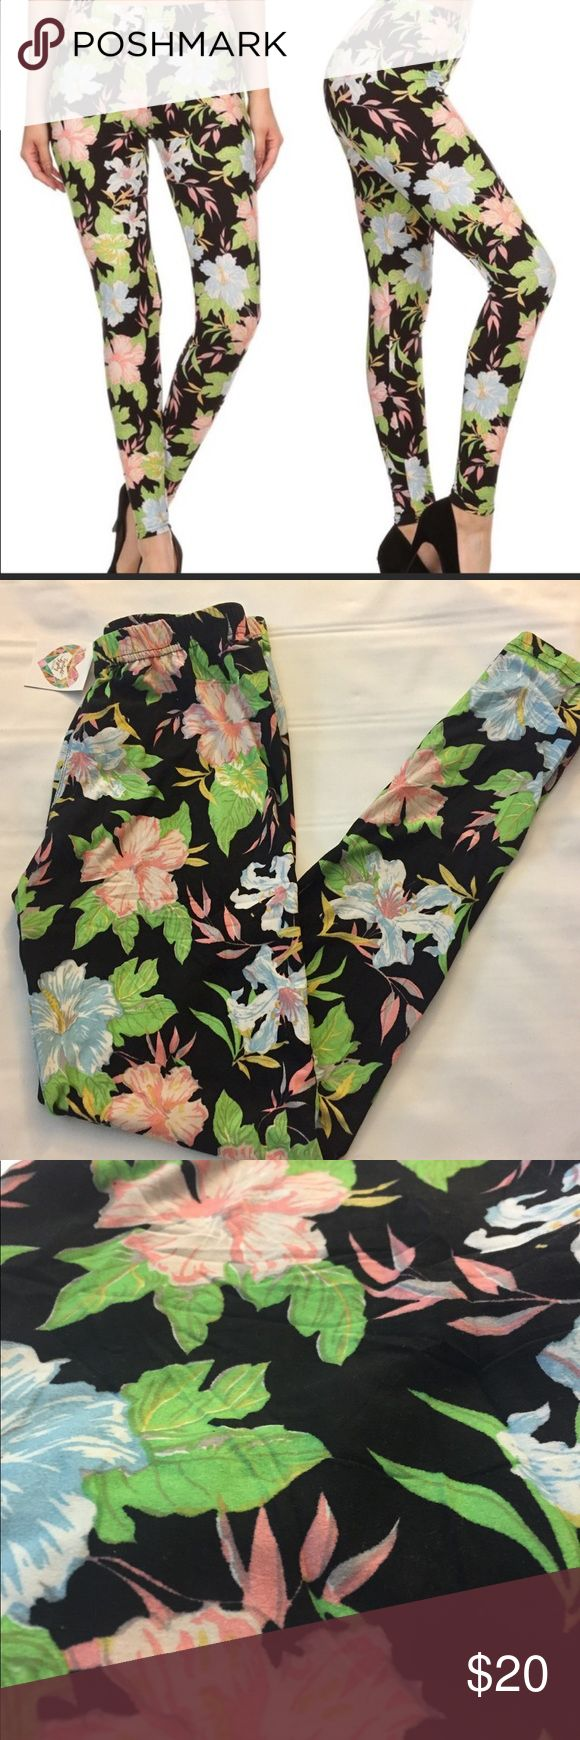 Legging Floral leggings. Super soft and comfortable. One size (fits 0-14). Very good quality not see through. Polyester and Spandex . Hand wash only and dry flat. Smoke and pet free home. Brand new with tags. 🍎 Twilight Gypsy Collective Pants Leggings